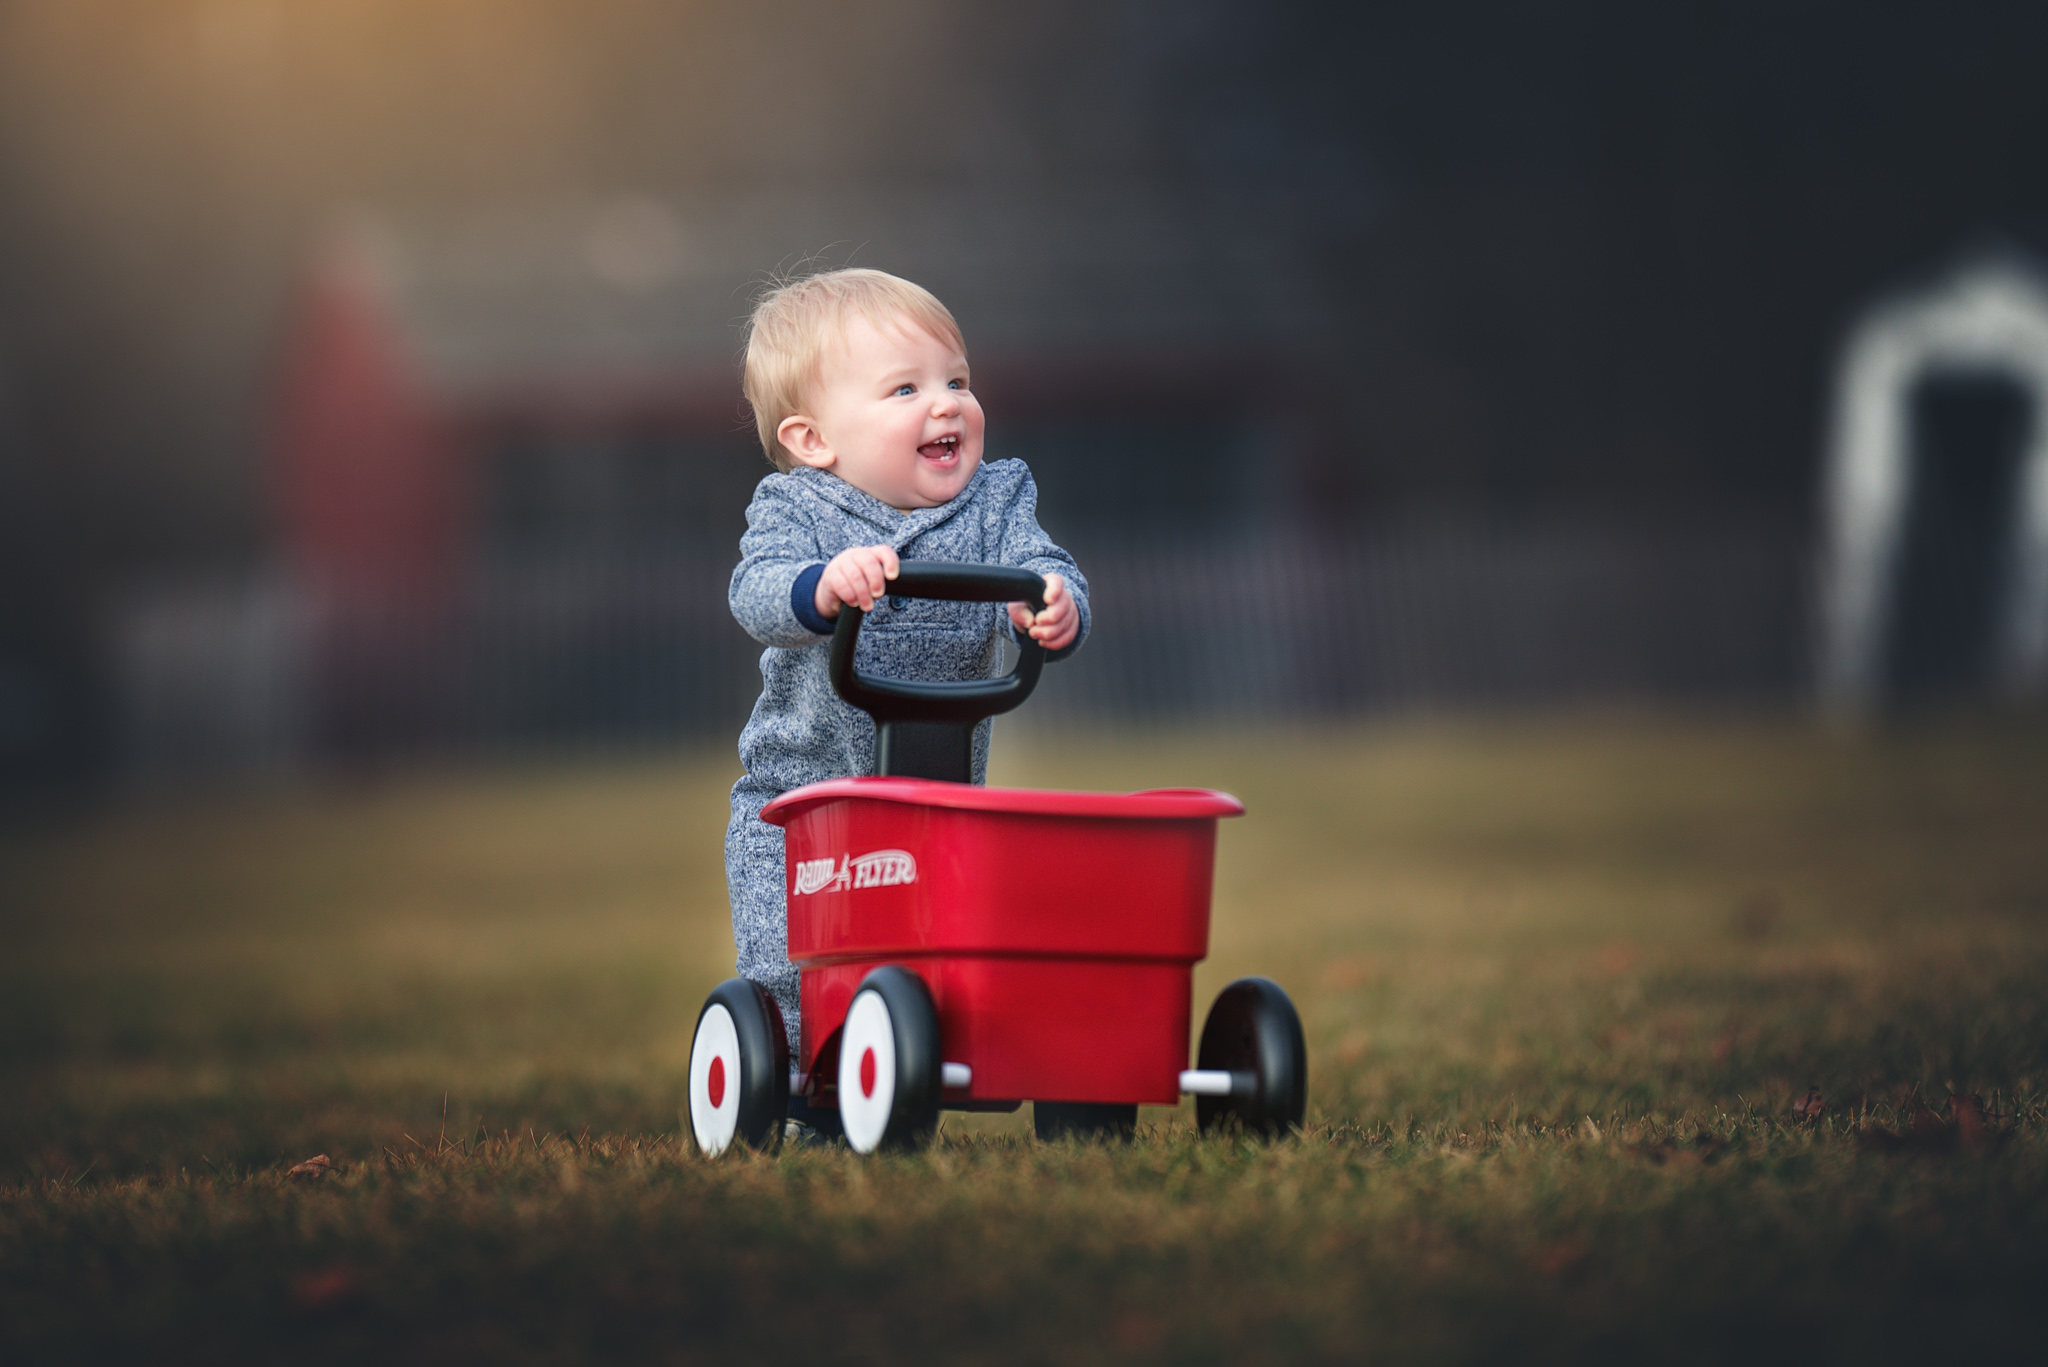 Toddler and wagon by Fotoplicity.jpg